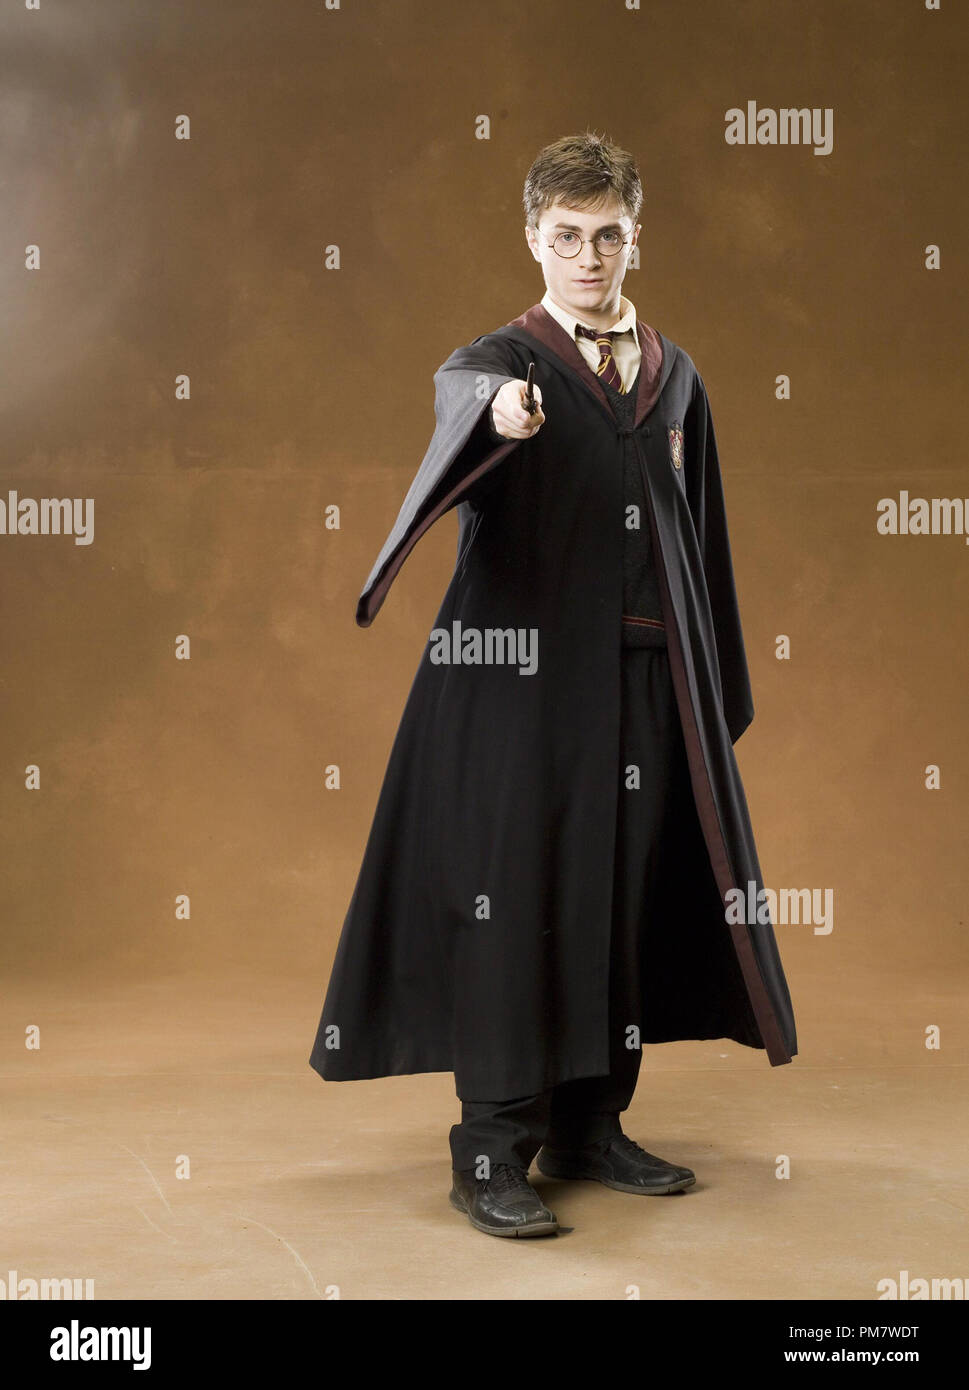 Daniel Radcliffe As Harry Potter In Warner Bros Pictures Fantasy Harry Potter And The Order Of The Phoenix 2007 Stock Photo Alamy